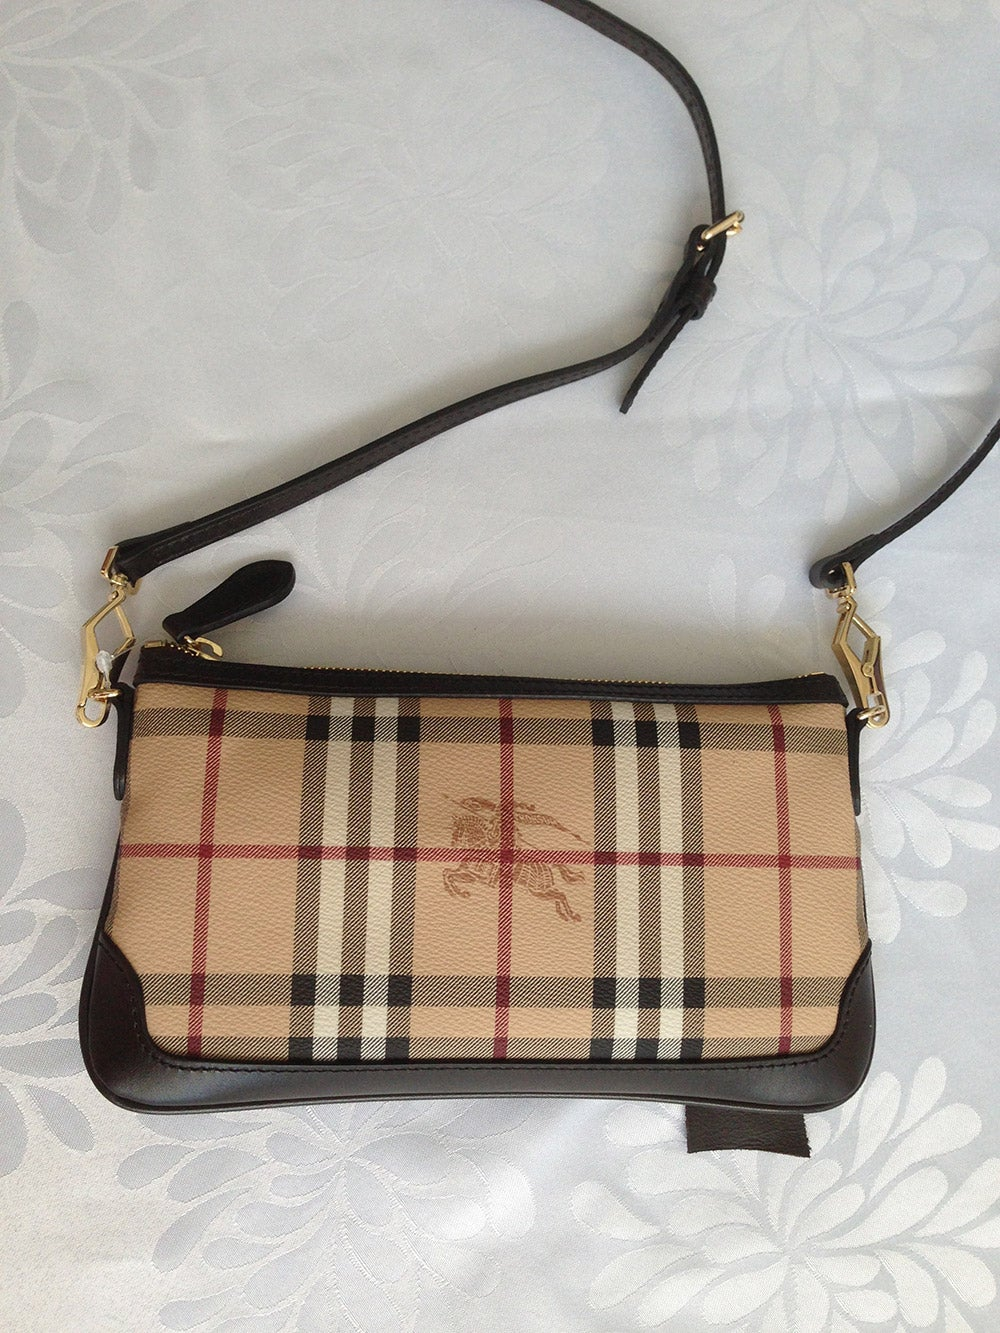 burberry crossbody bag outlet qpy4  Image of Custom Replacement Straps & Handles for Burberry Handbags/Purses/ Bags